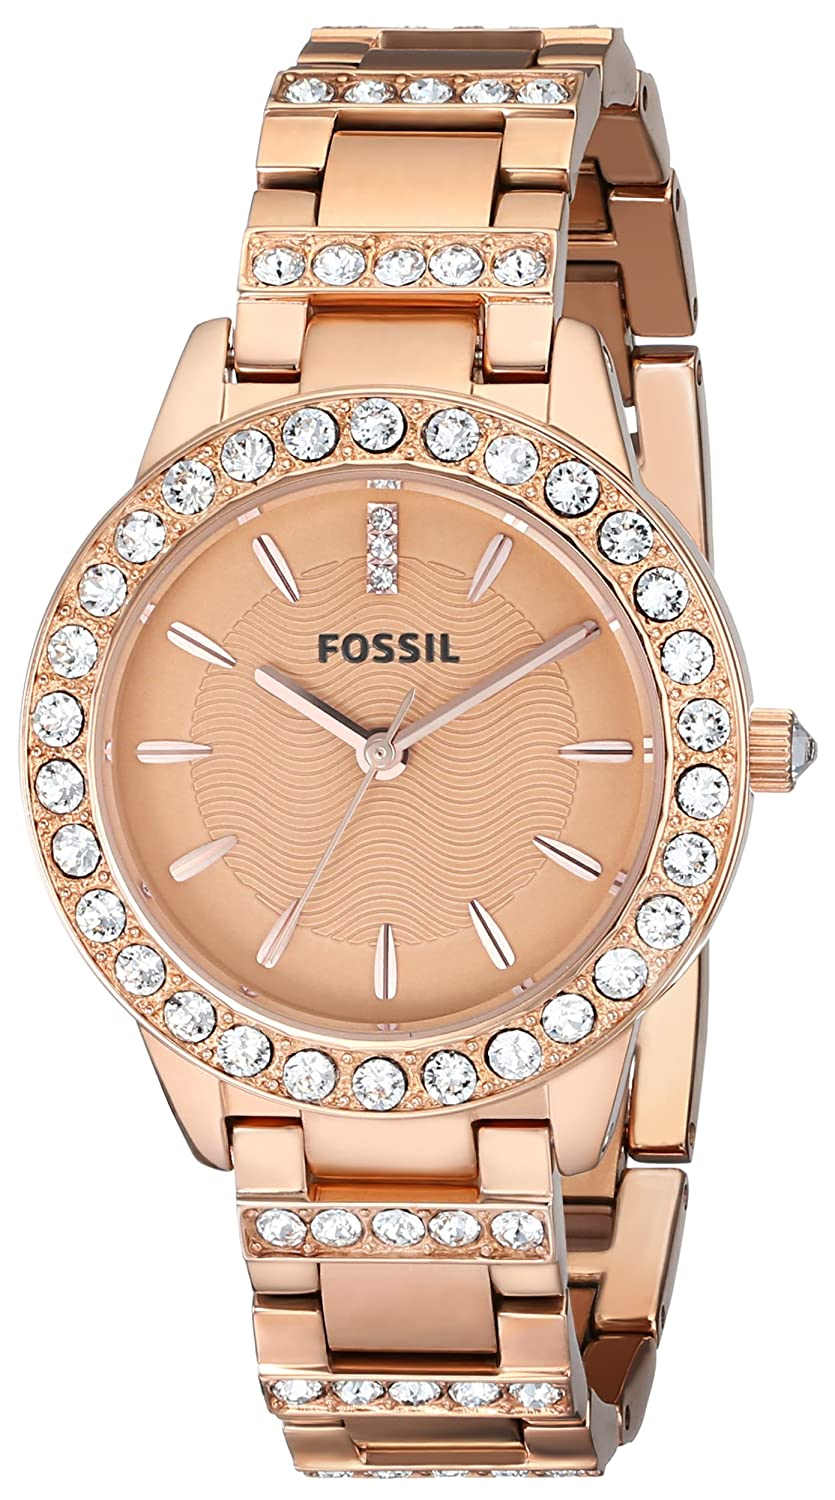 4b6a127d9d9 Fossil Women s ES3020 Jesse Analog Display Analog Quartz Rose Gold Watch   Fossil  Amazon.ca  Watches